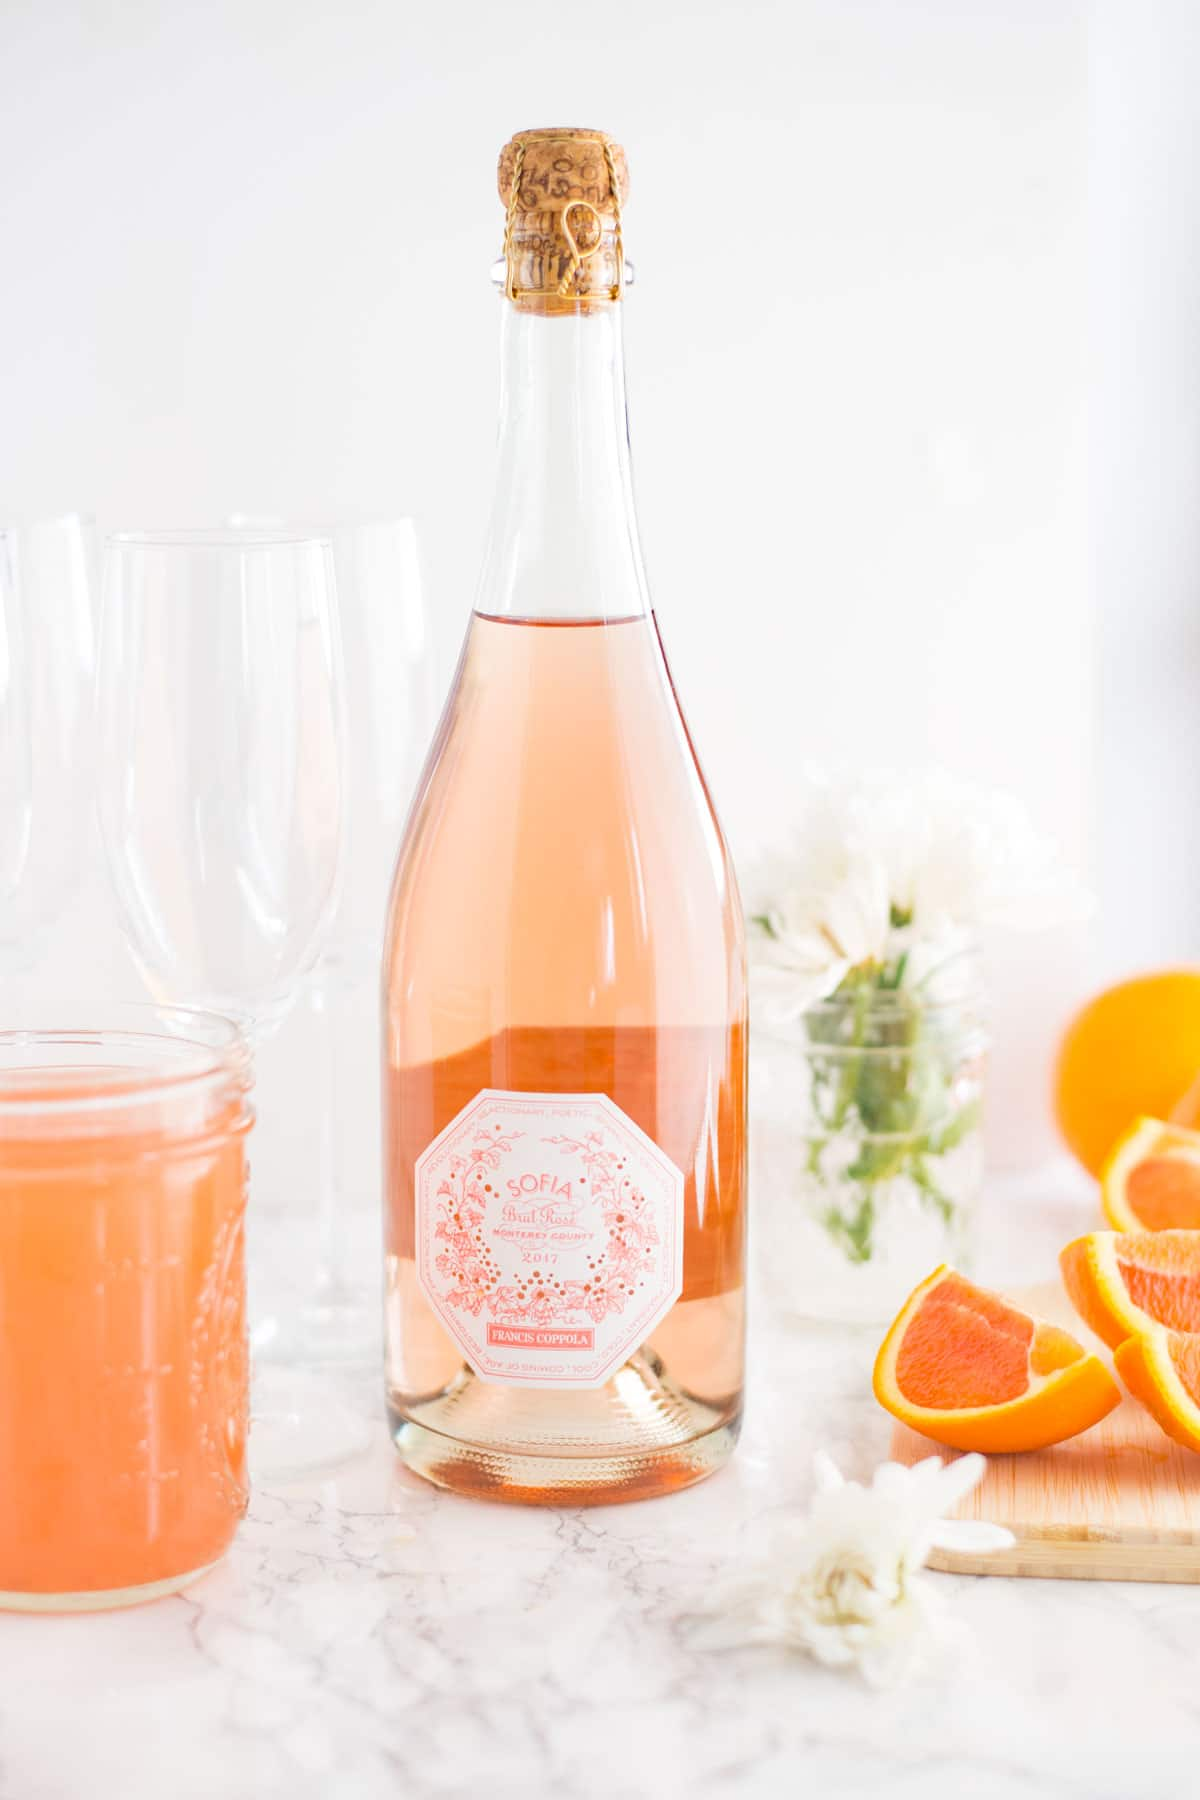 rose champagne, orange slices, flowers, and grapefruit juice on marble background